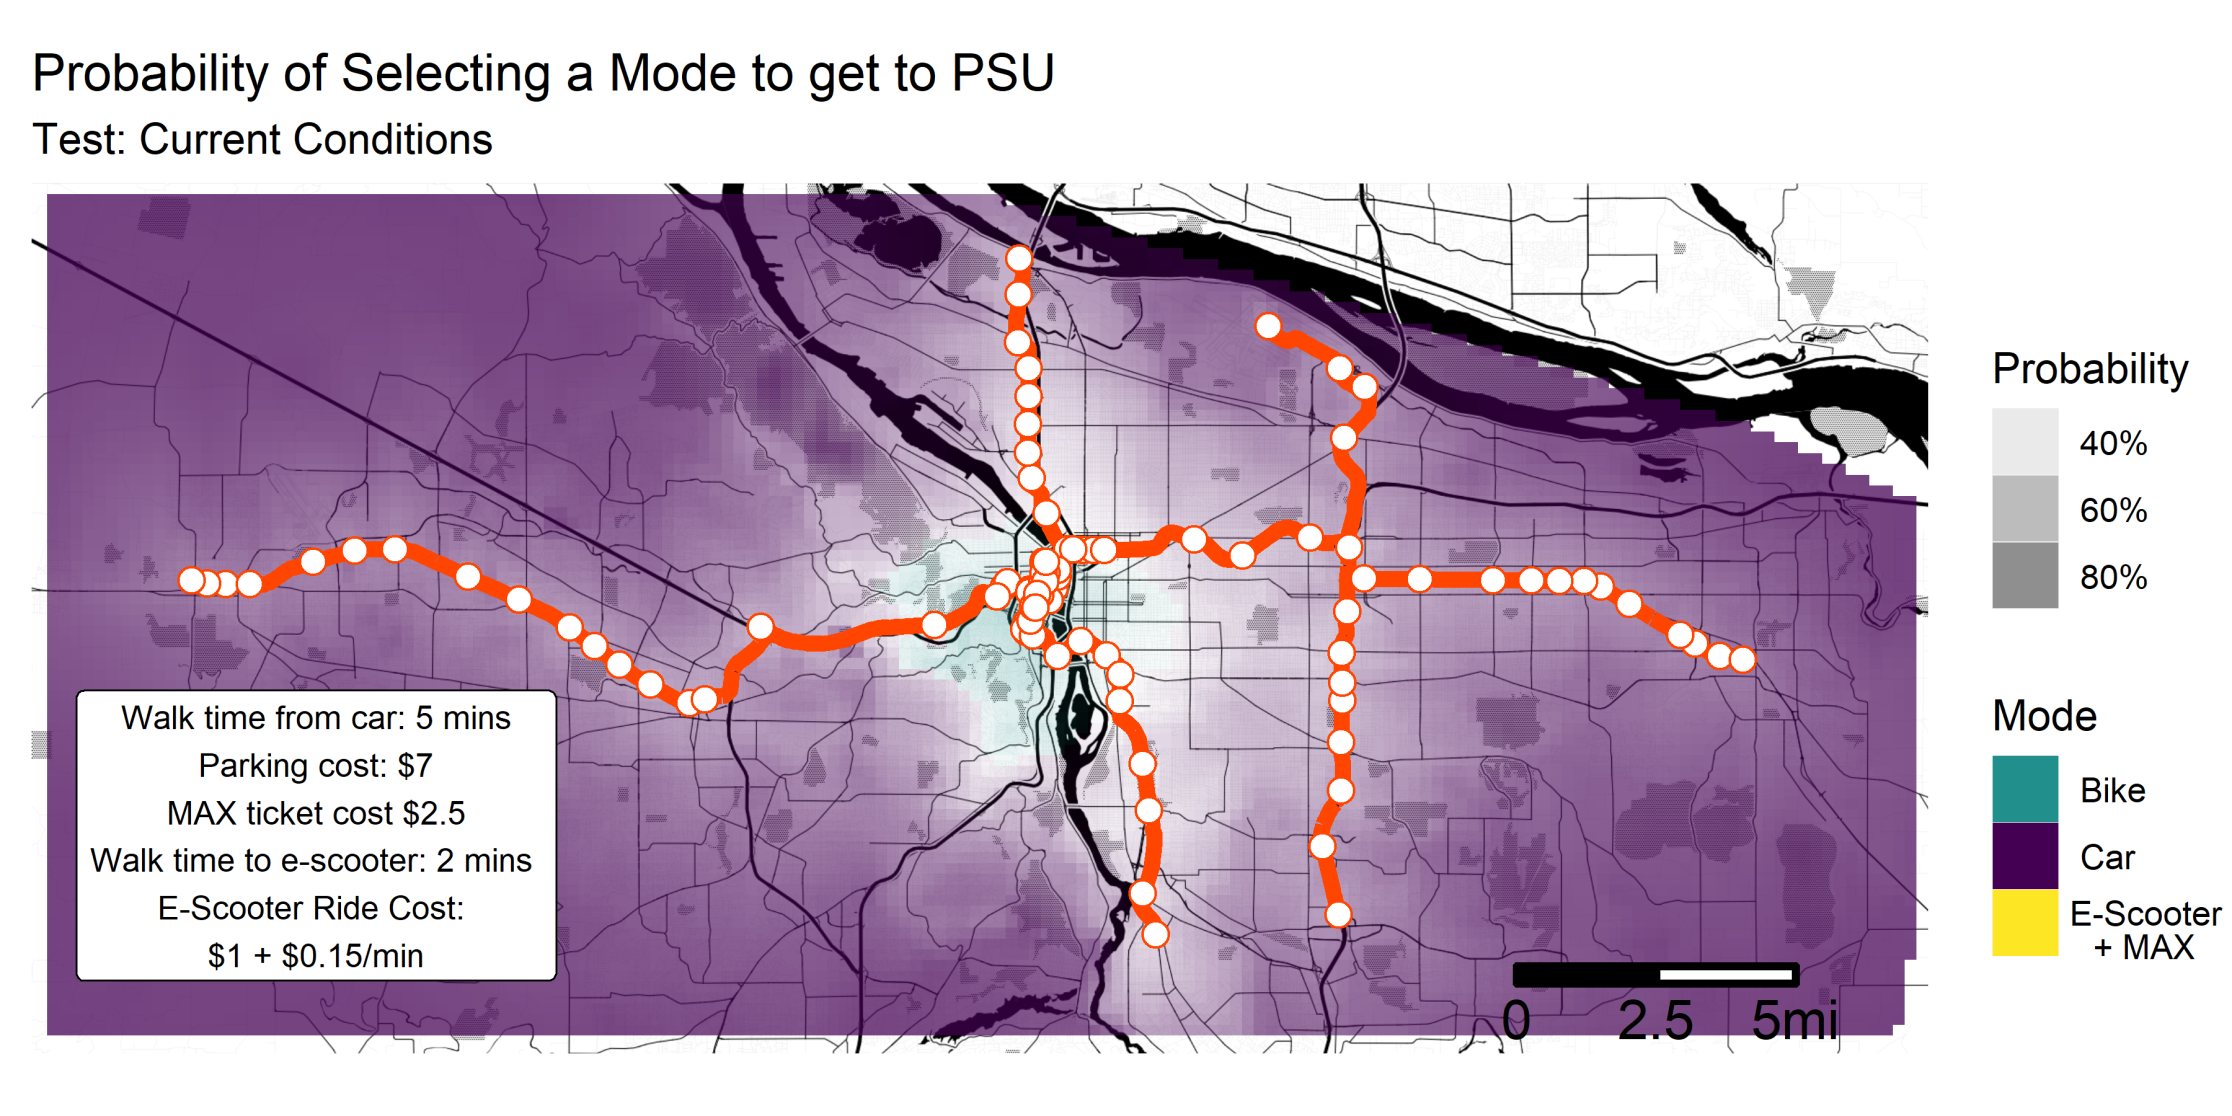 Probability of selecting a mode to get to PSU, under current conditions. This map shows that there is no place in the metro area where using e-scooter + MAX is the most preferable mode choice.